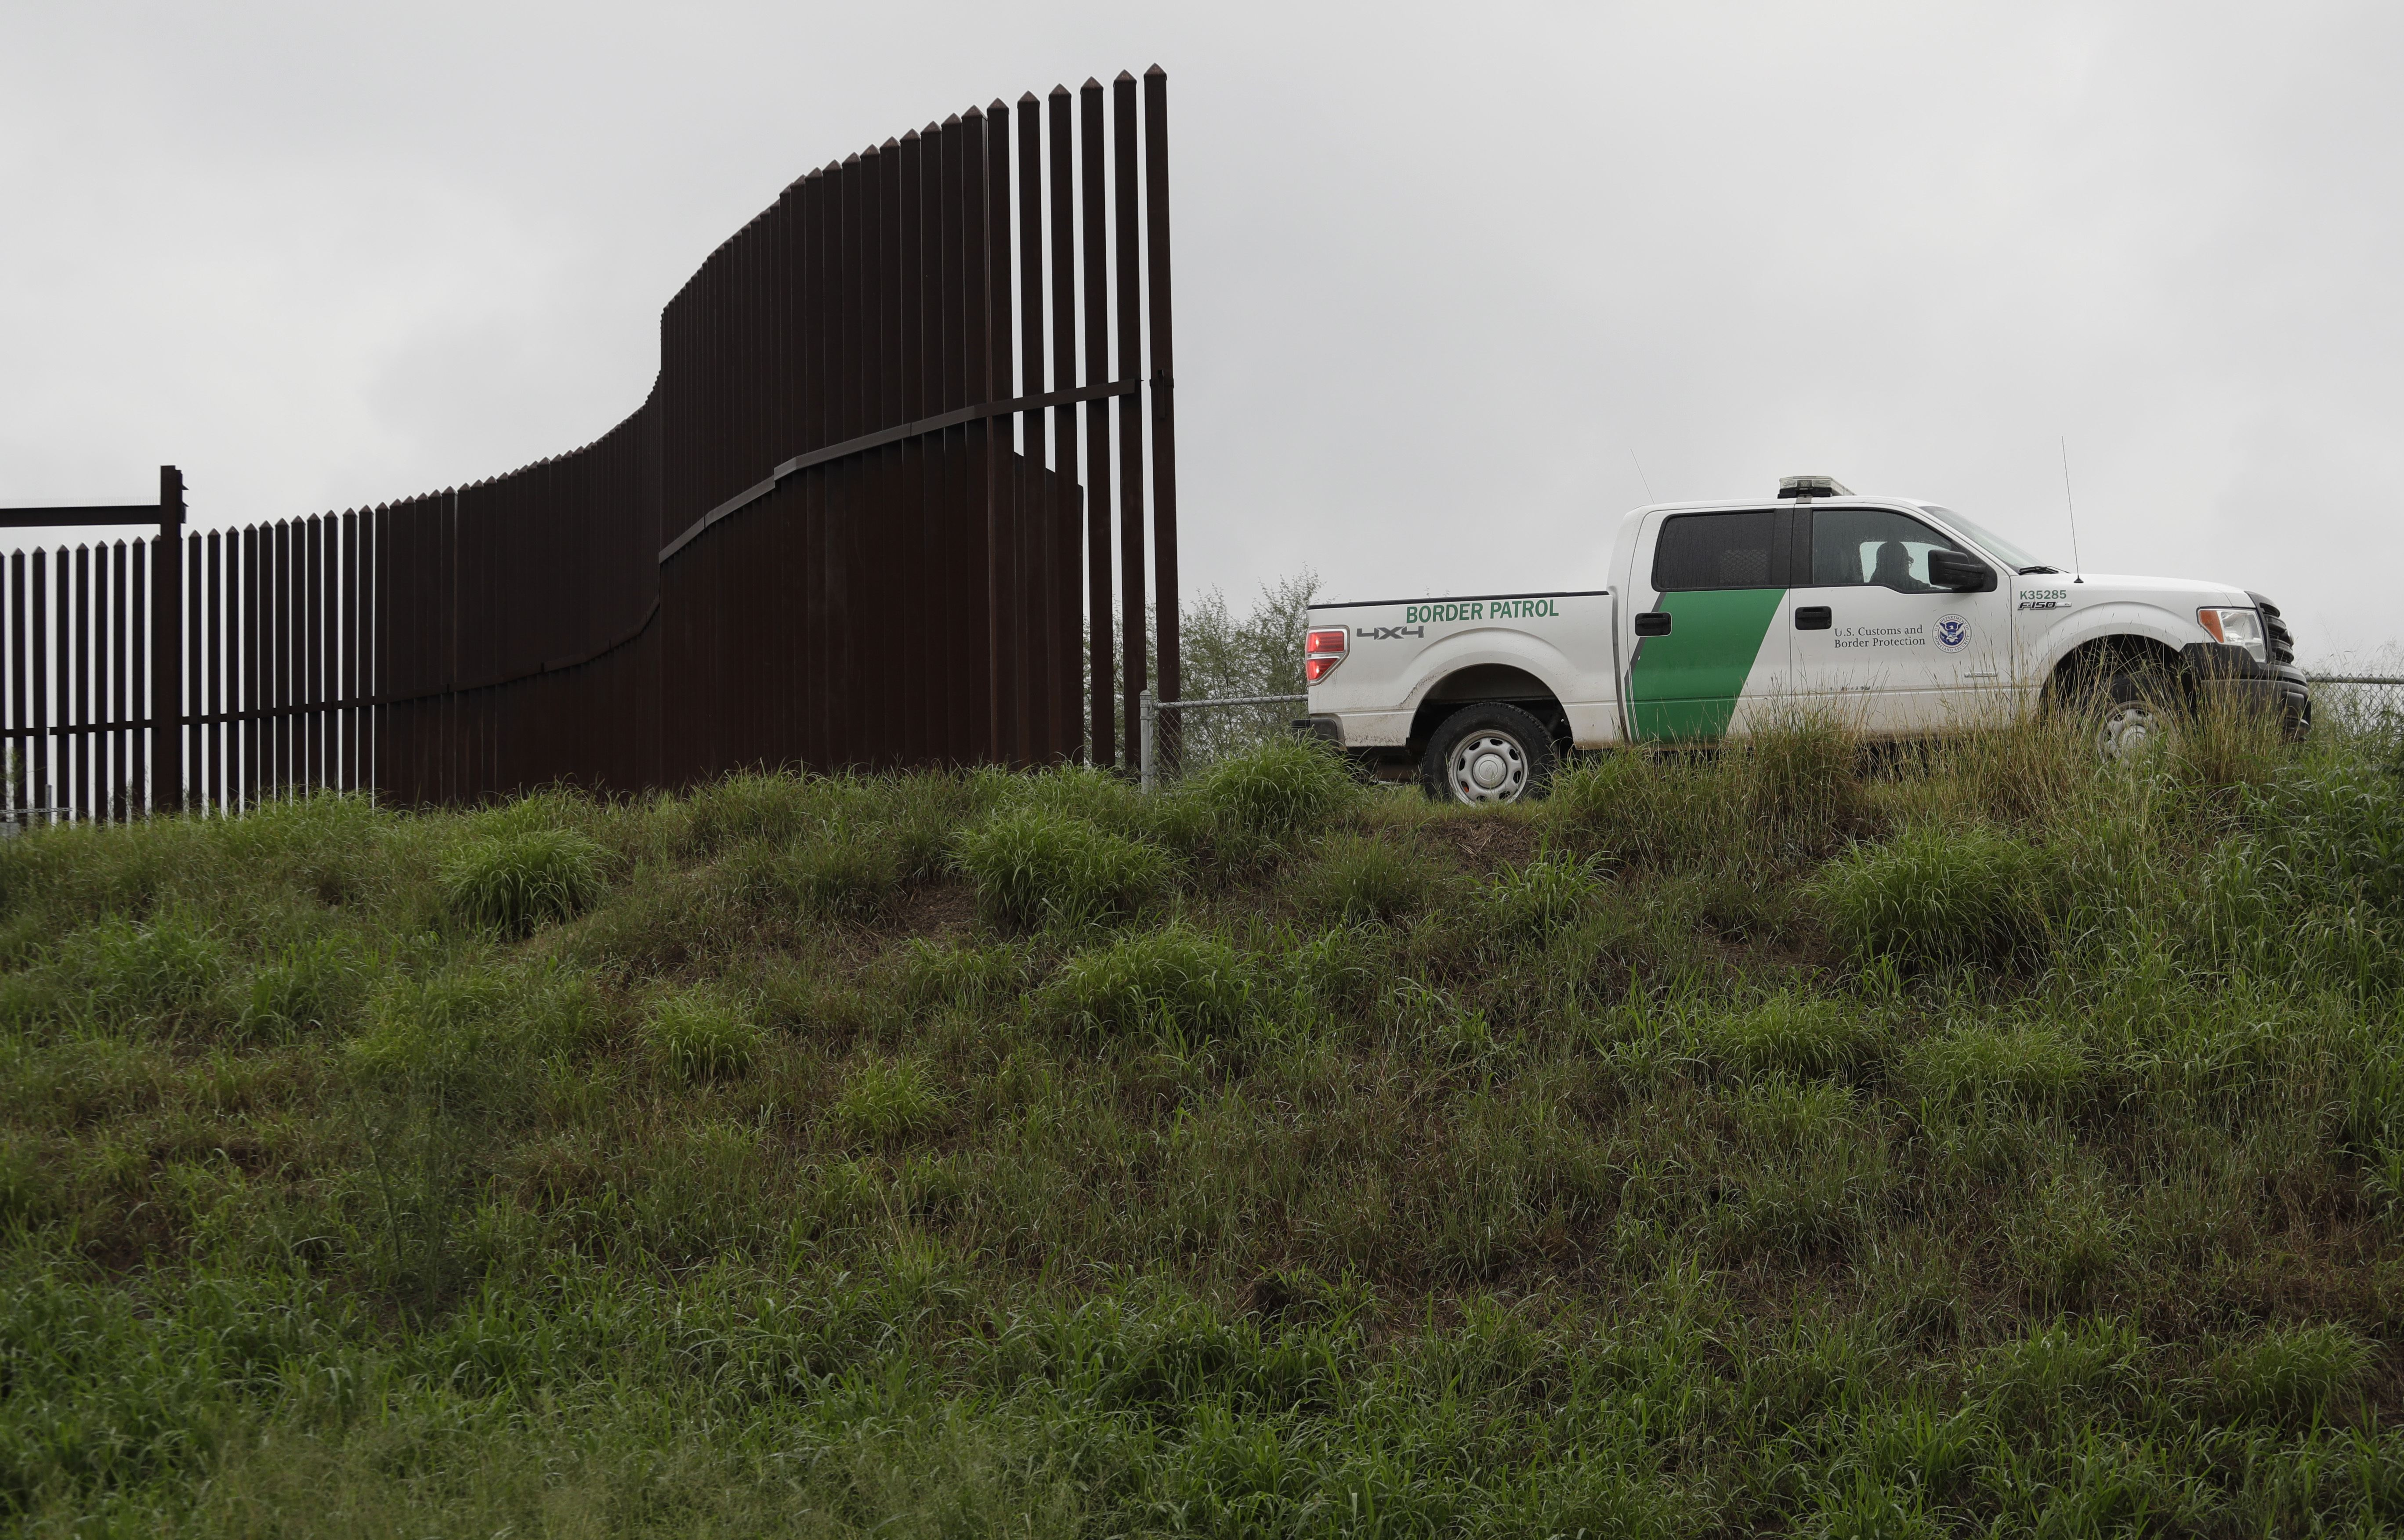 Border Patrol Agent Killed, Partner Hurt in Texas Attack